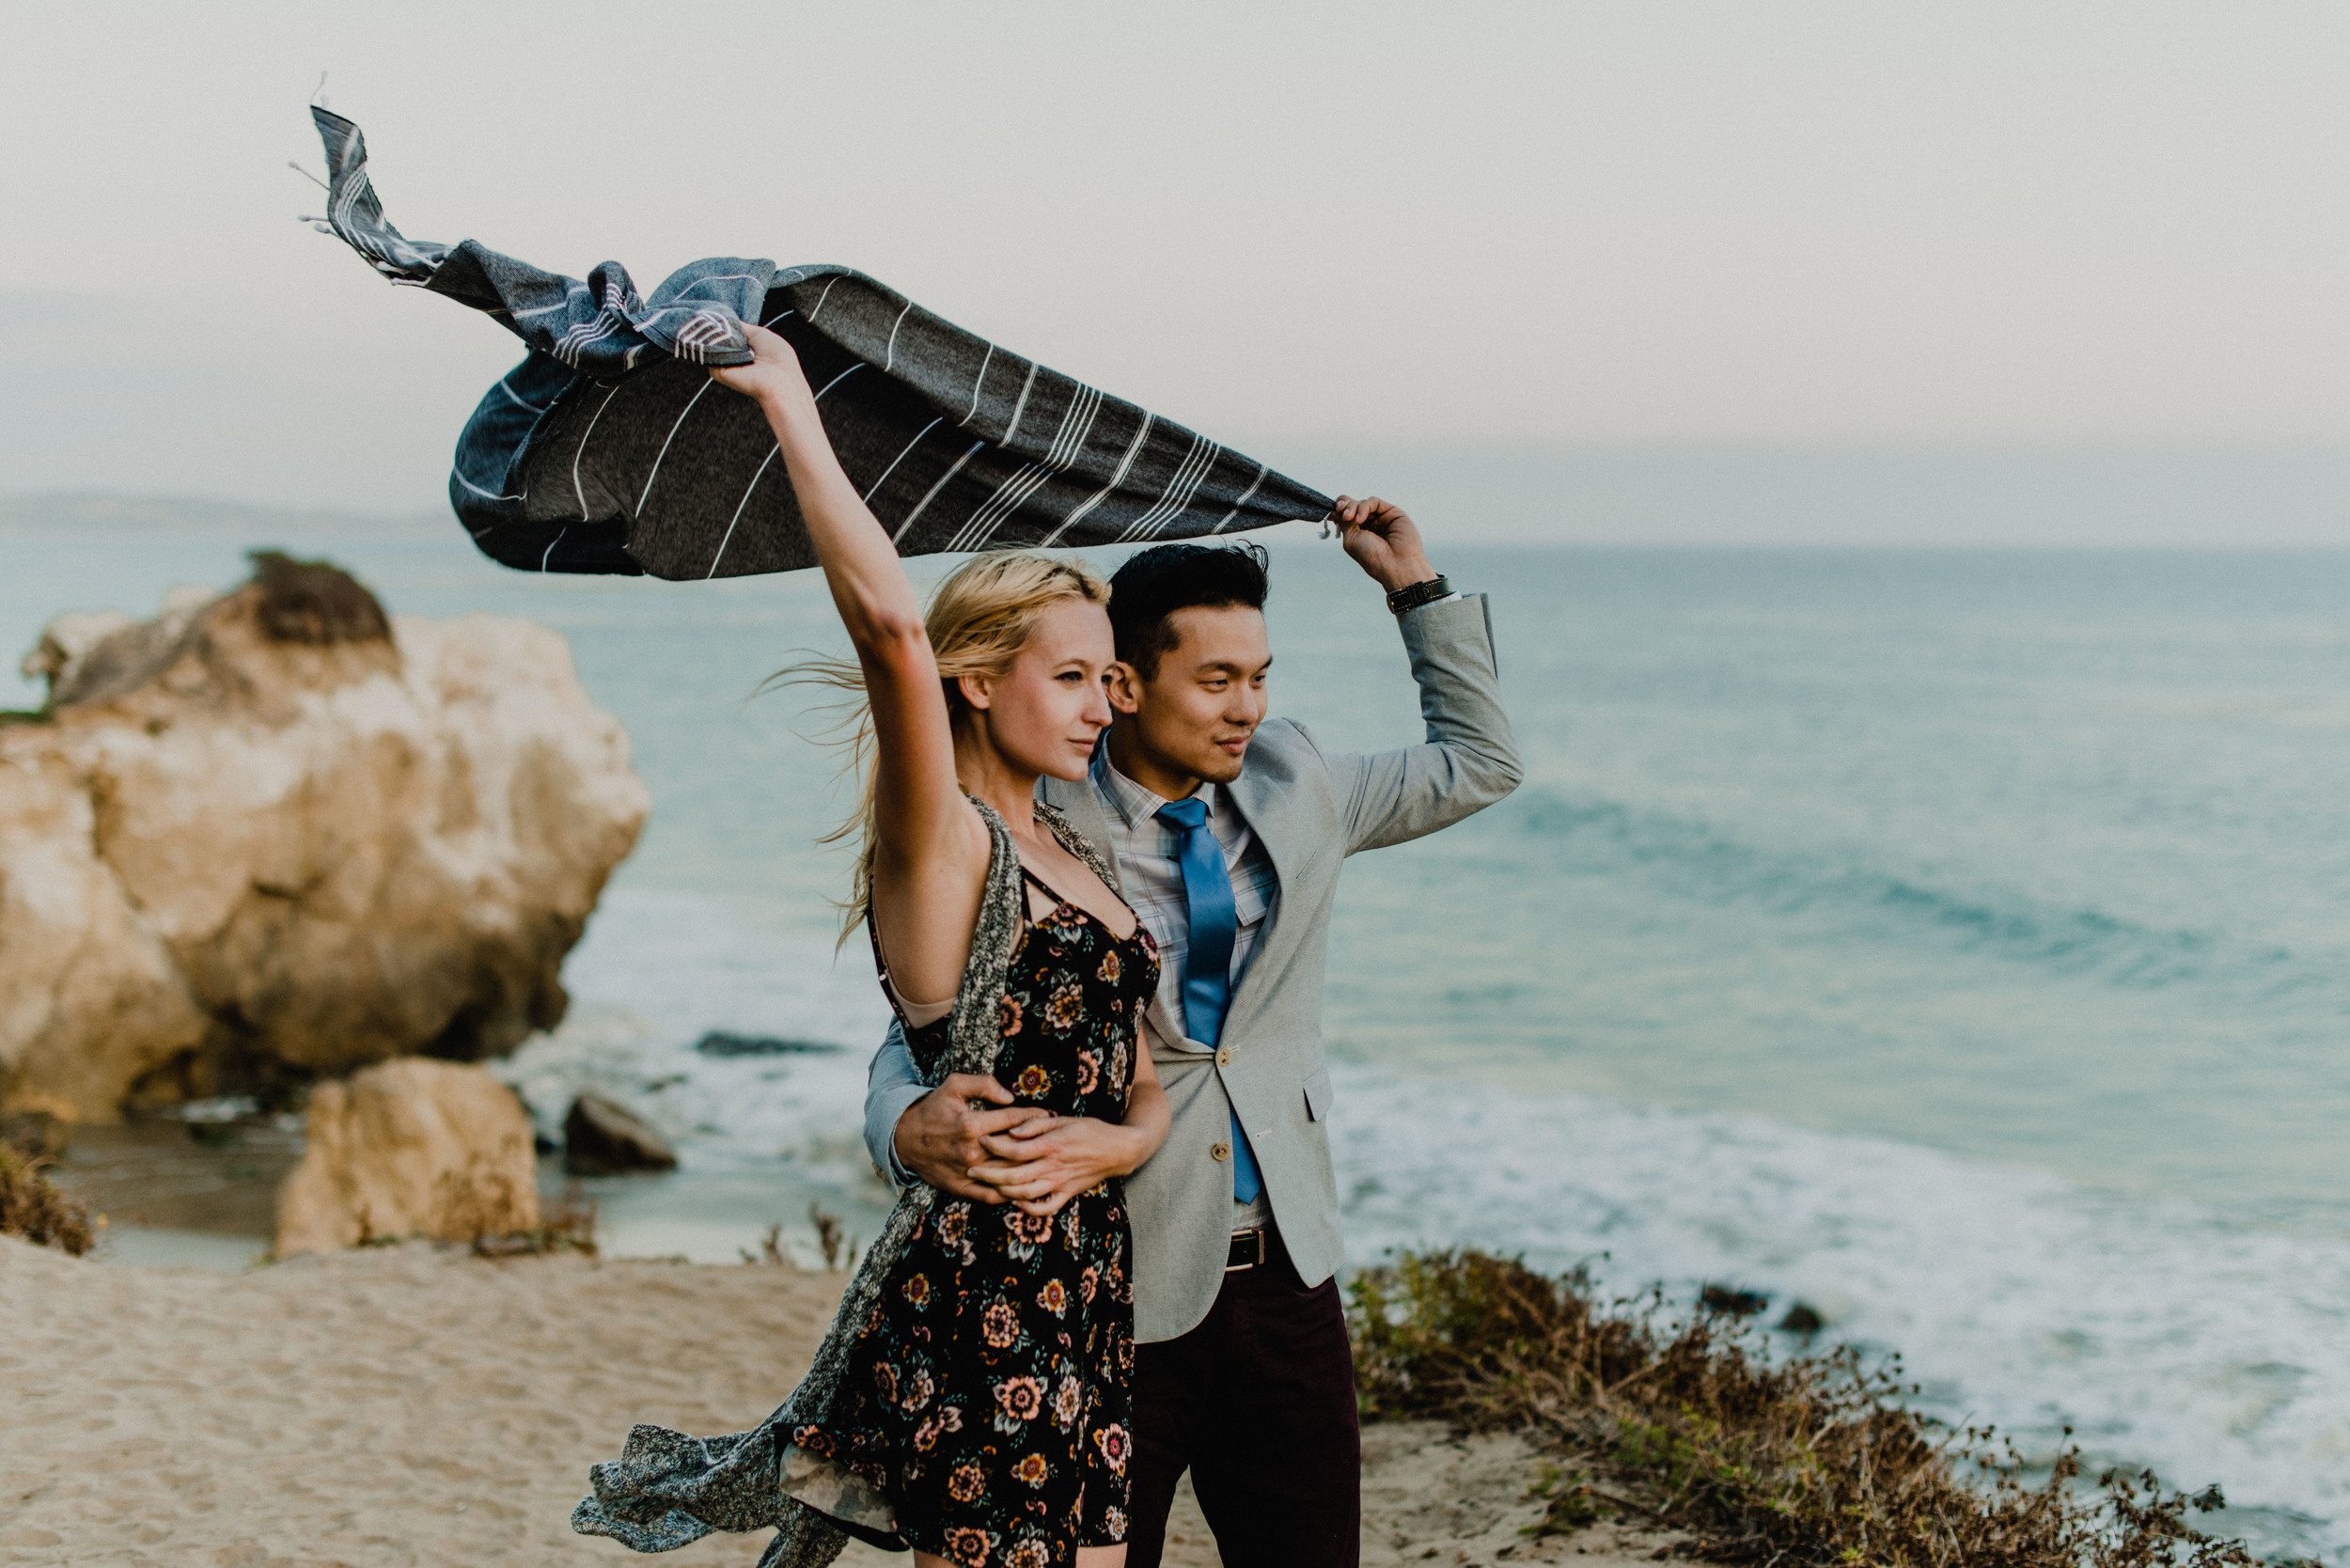 ElMatadorBeach-Editorial-Adventure-Mallory+JustinPhoto-215.jpg